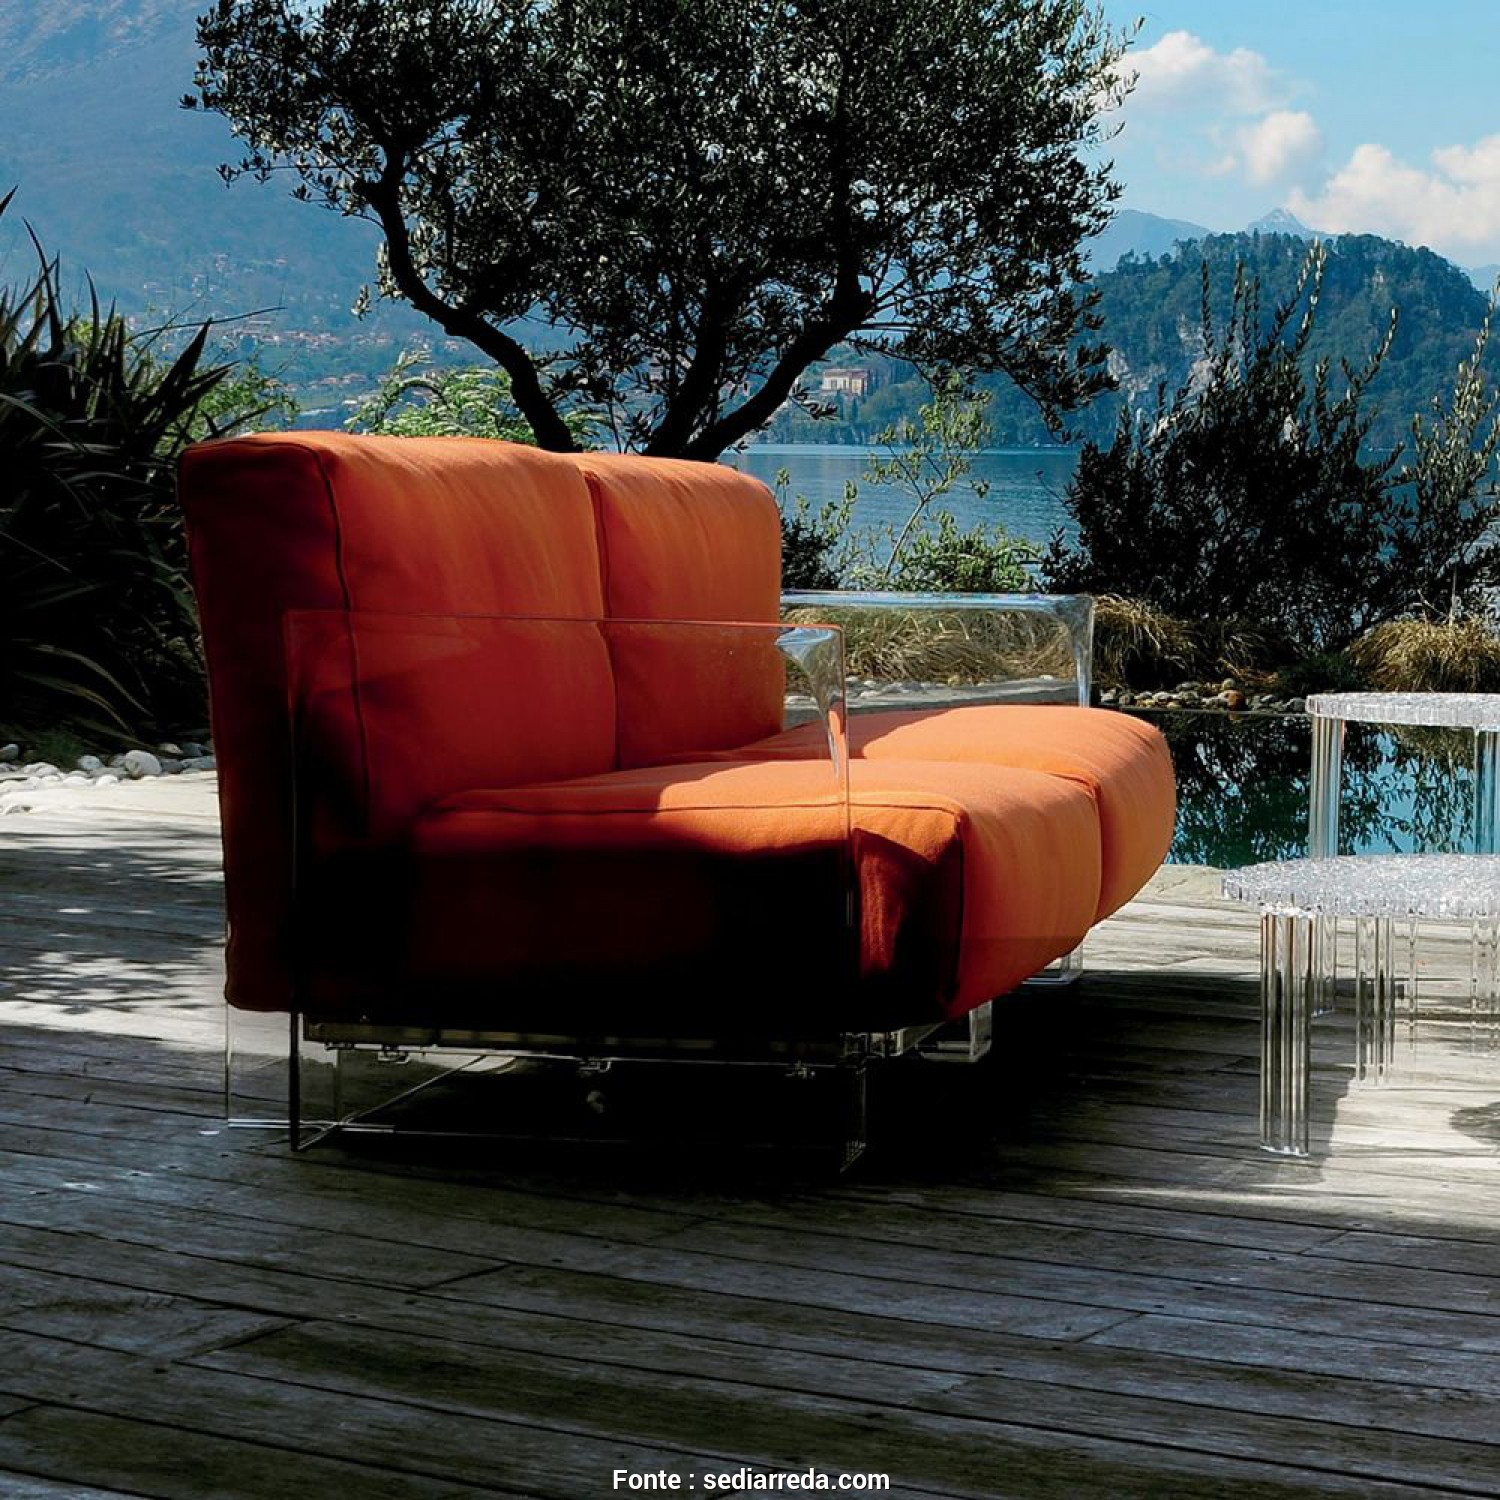 Kartell Divano Outdoor, Semplice Pop Outdoor Sofa, Sofa With Transparent Polycarbonate Structure, Cushions Covered In Orange Sunbrella Fabric